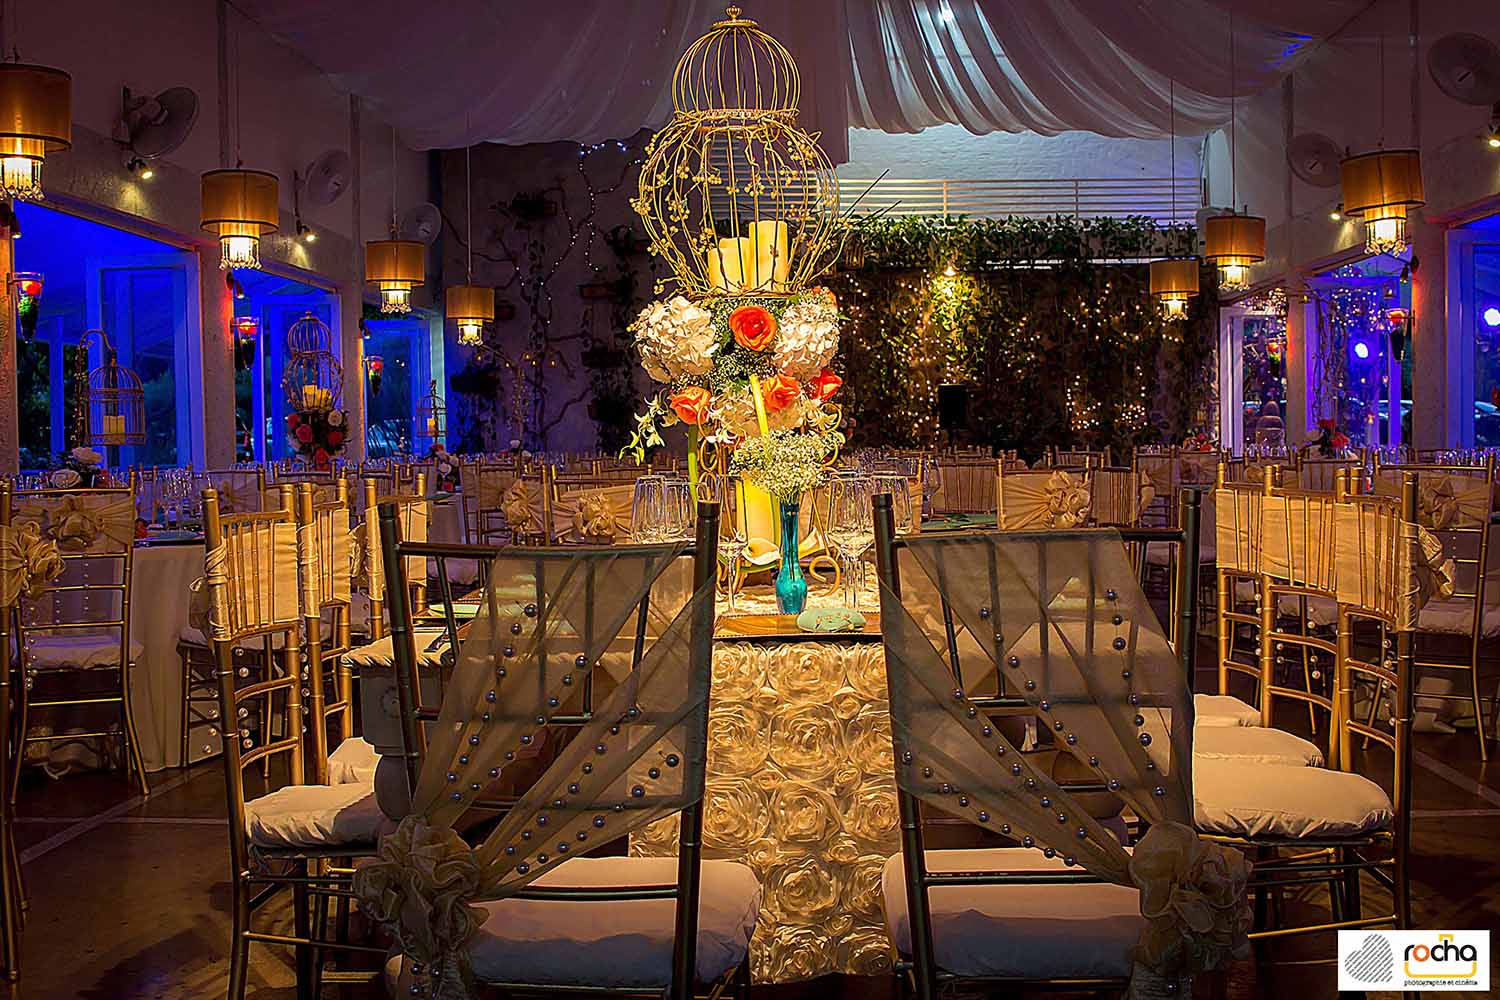 Decoracion salon de recepcion para matrimonio boda wedding for Budas decoracion interior